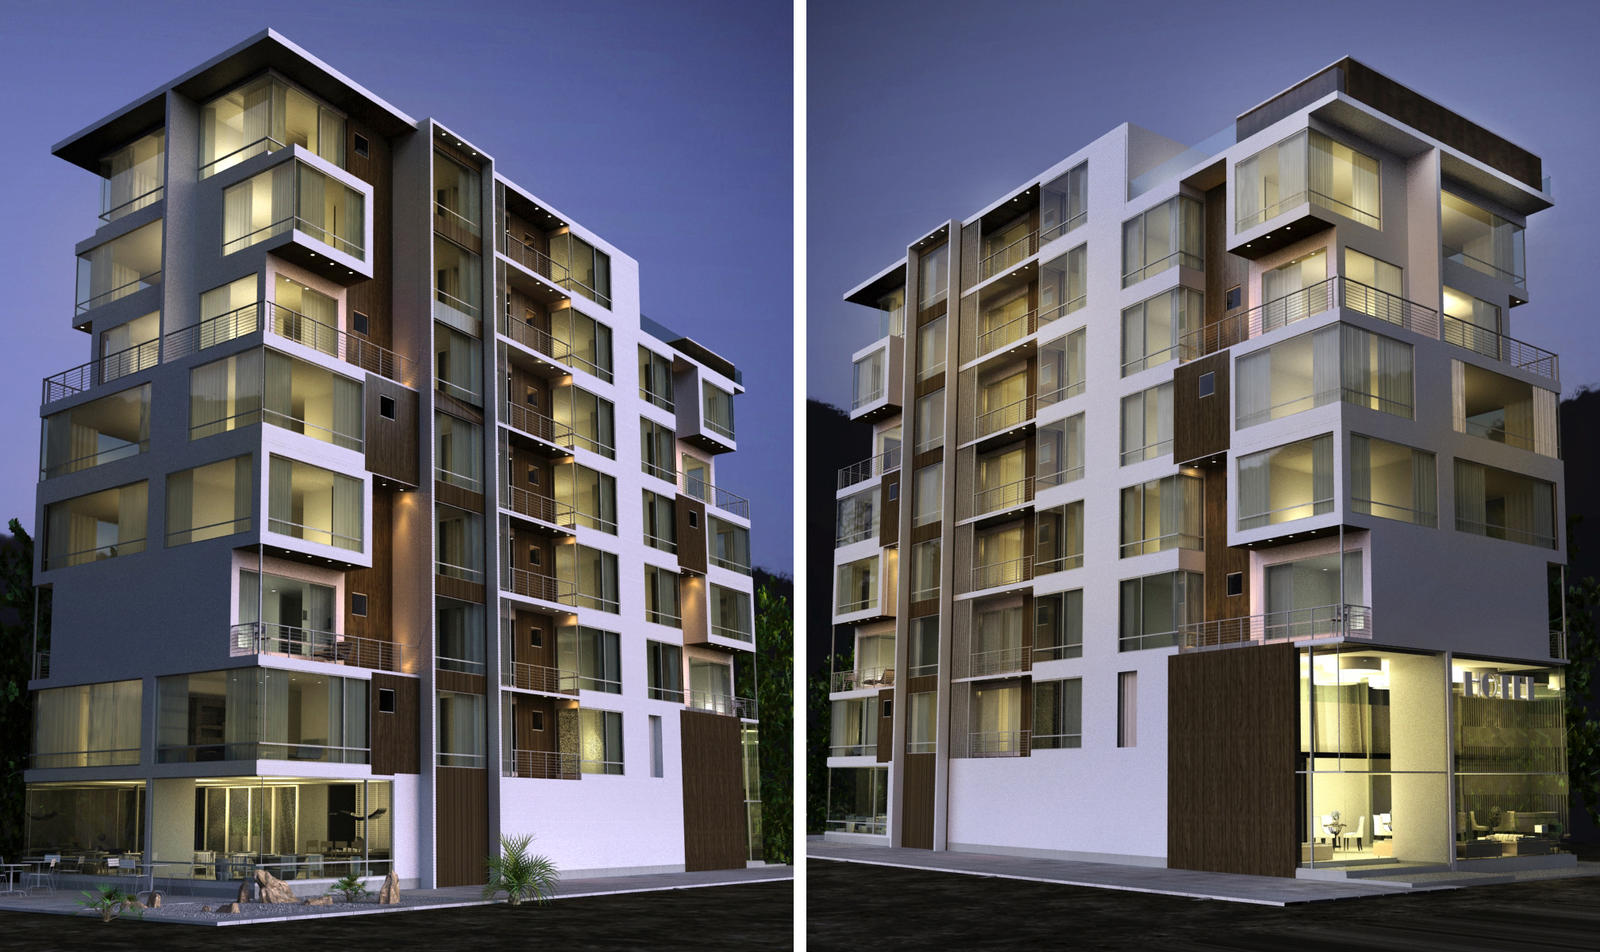 Apartment building by kasrawy on deviantart for Building designer